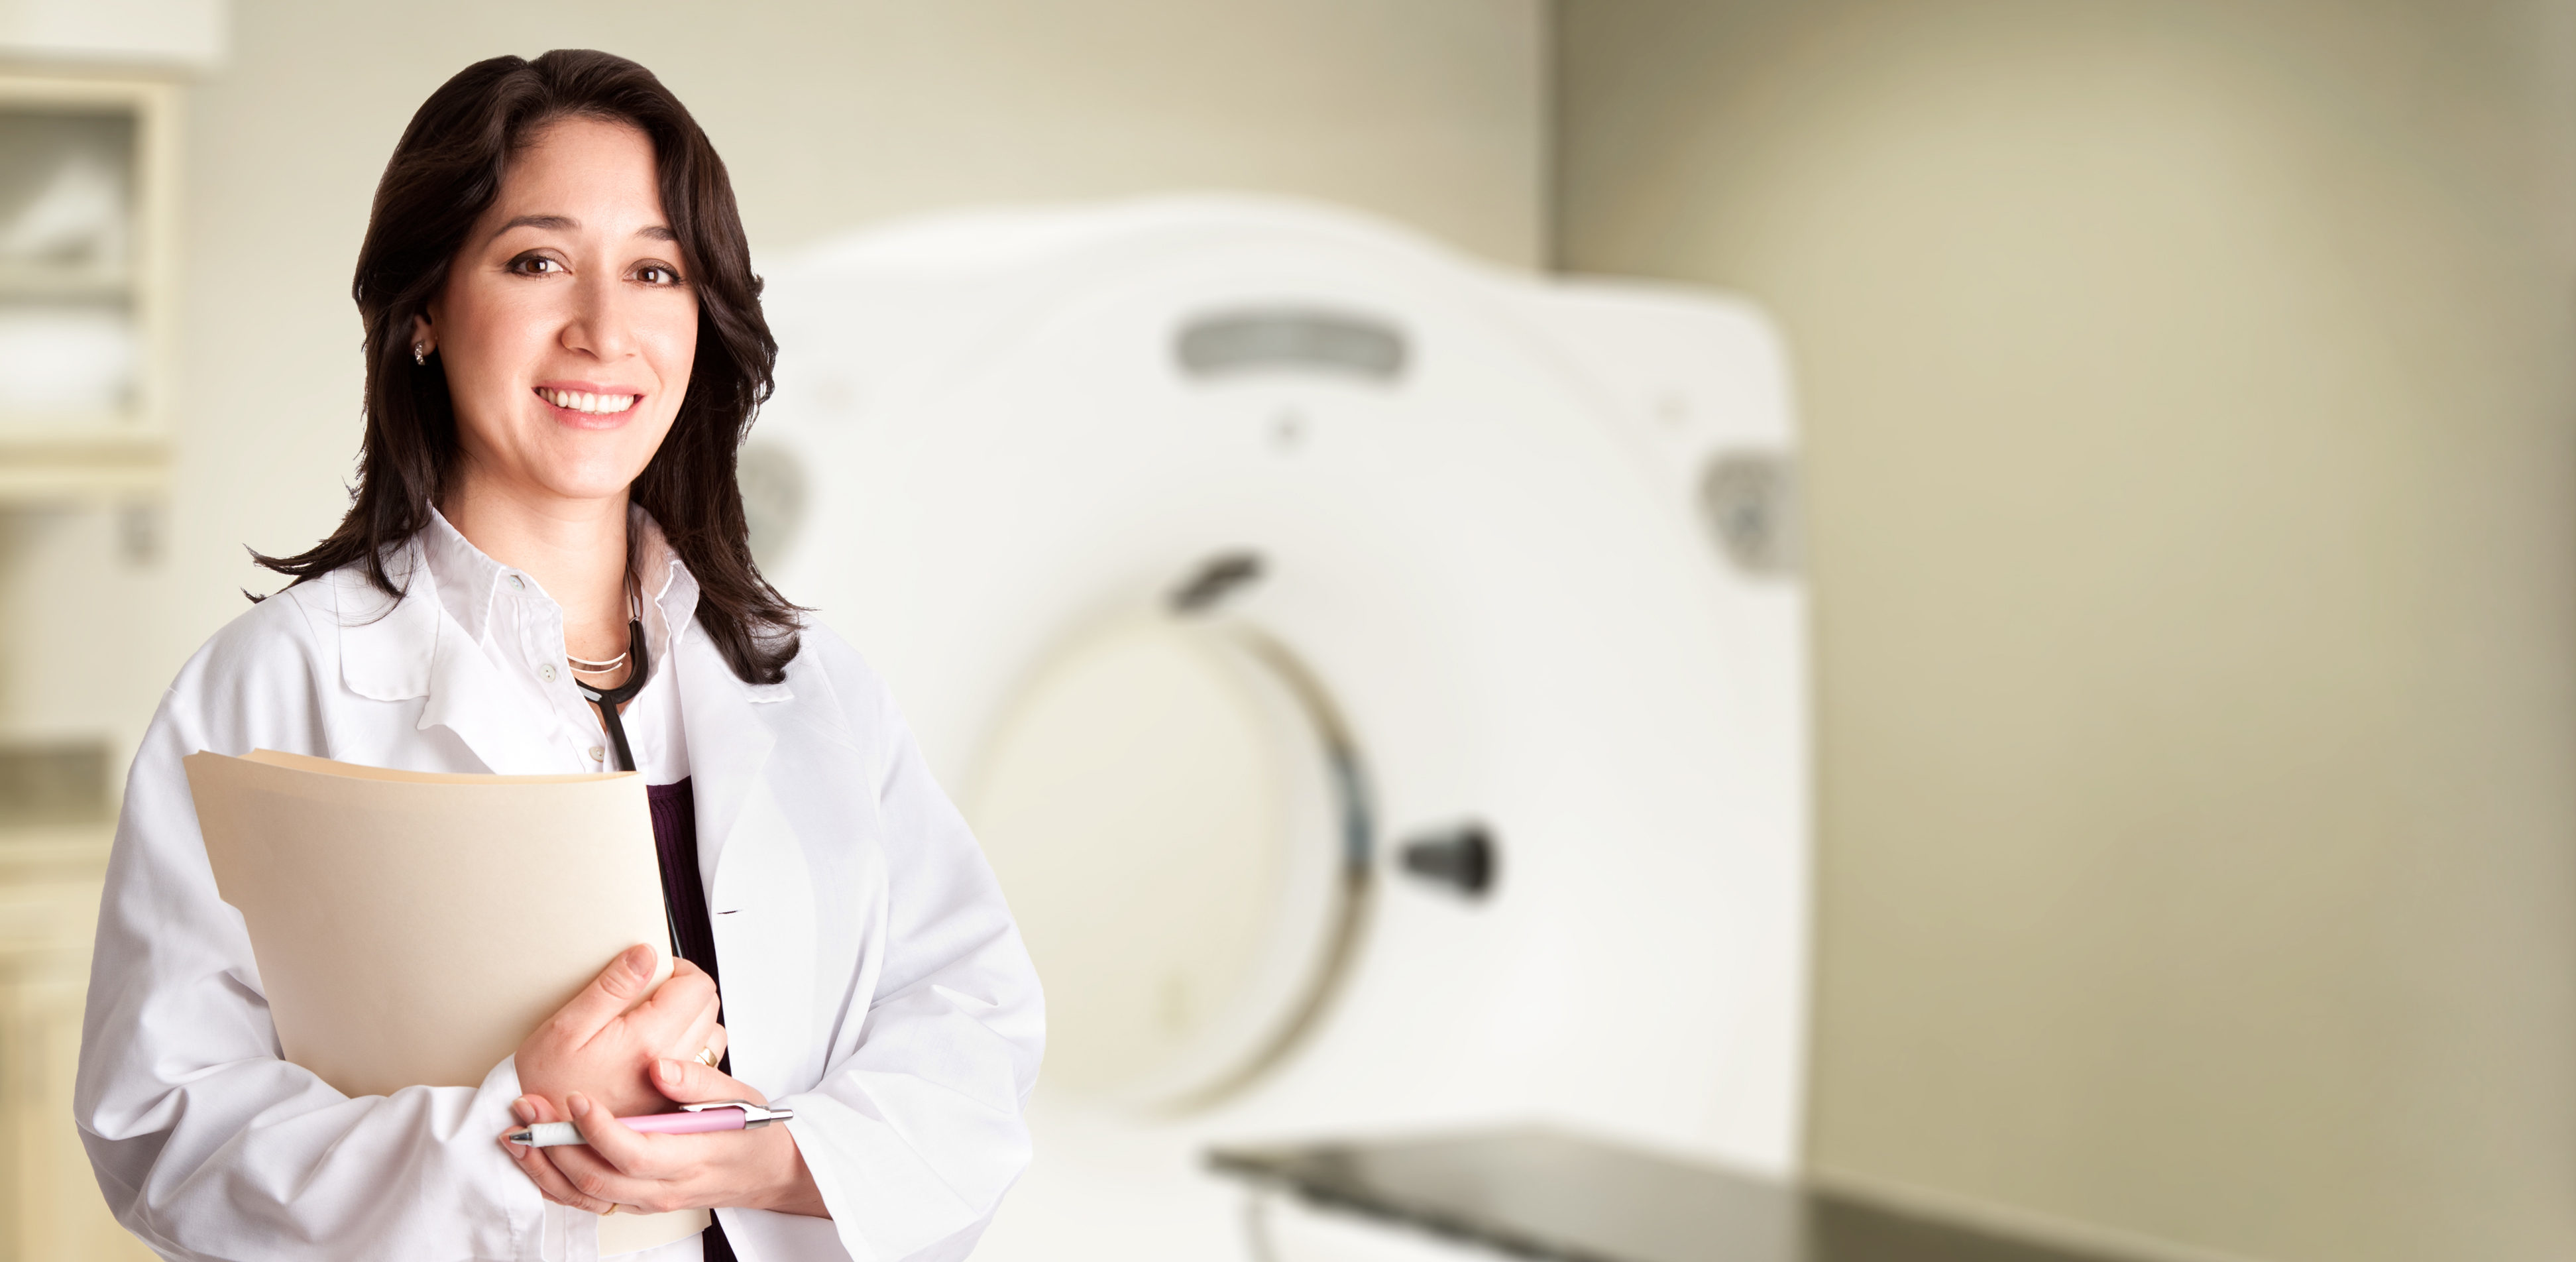 How to become Radiologist in India : Career as a Radiologist